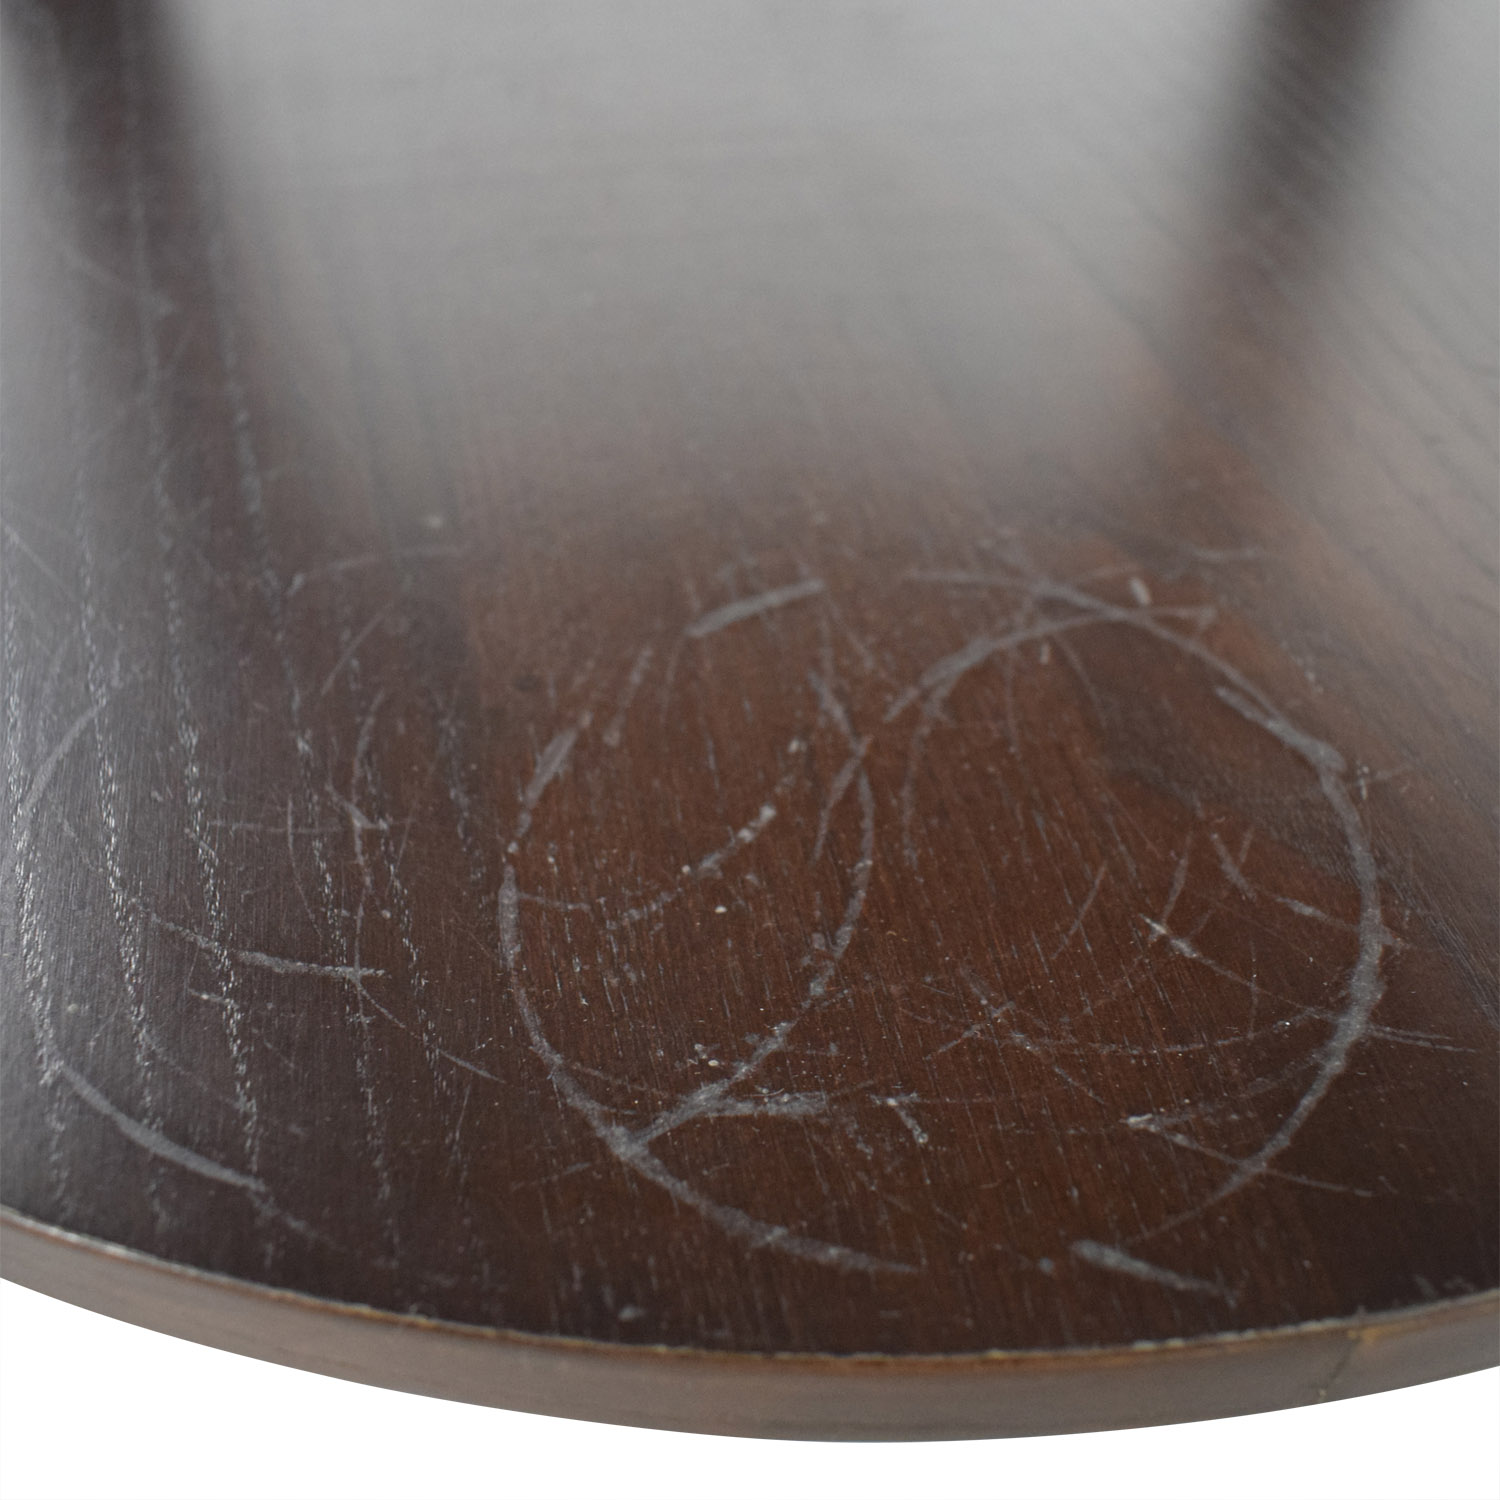 Ethan Allen Round Wood Accent Table sale